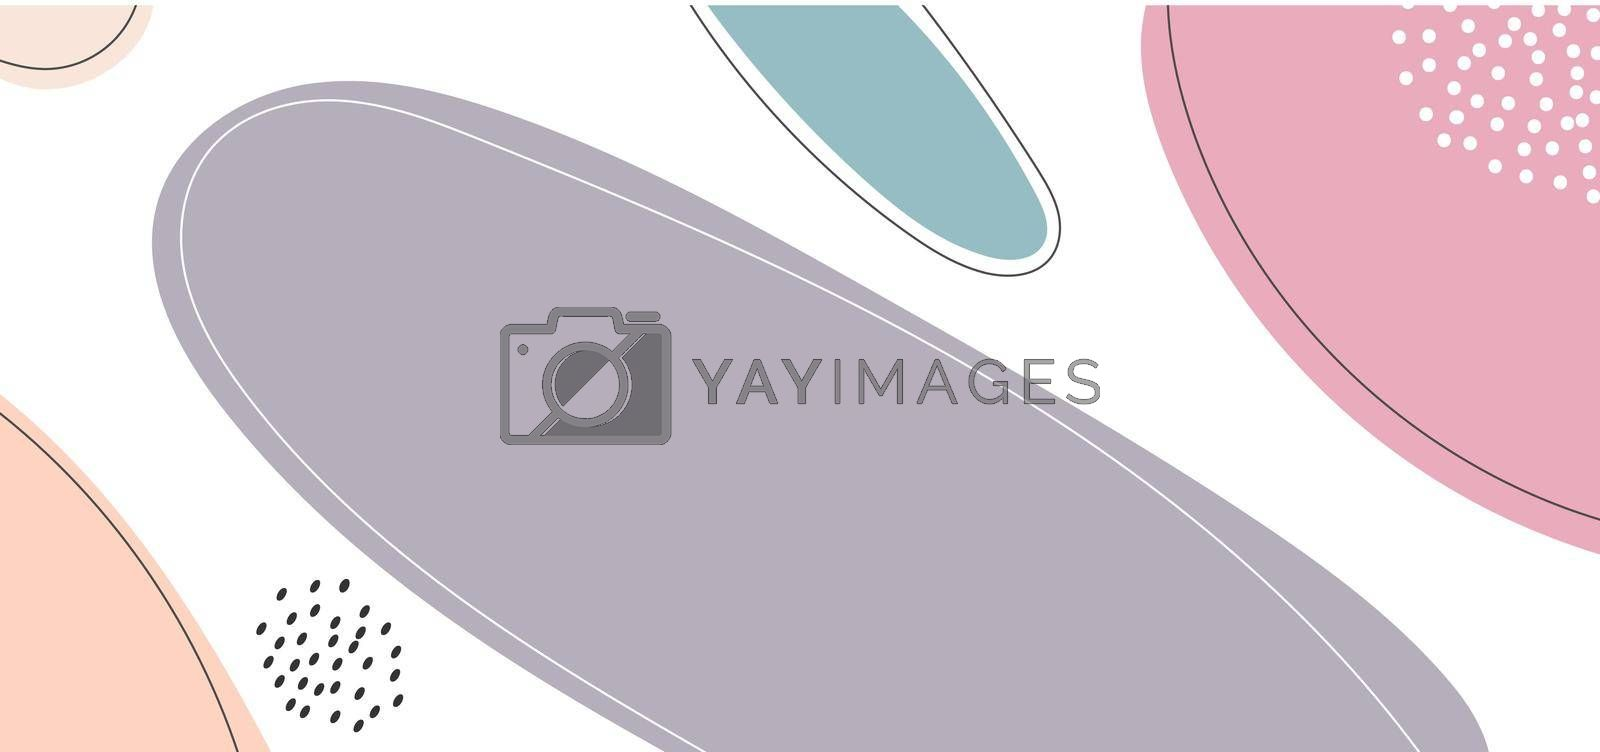 Abstract hand drawn organic shapes composition beautiful pastel color on white background minimal style. You can use for banner web template, social media post, presentation, etc. Vector illustration